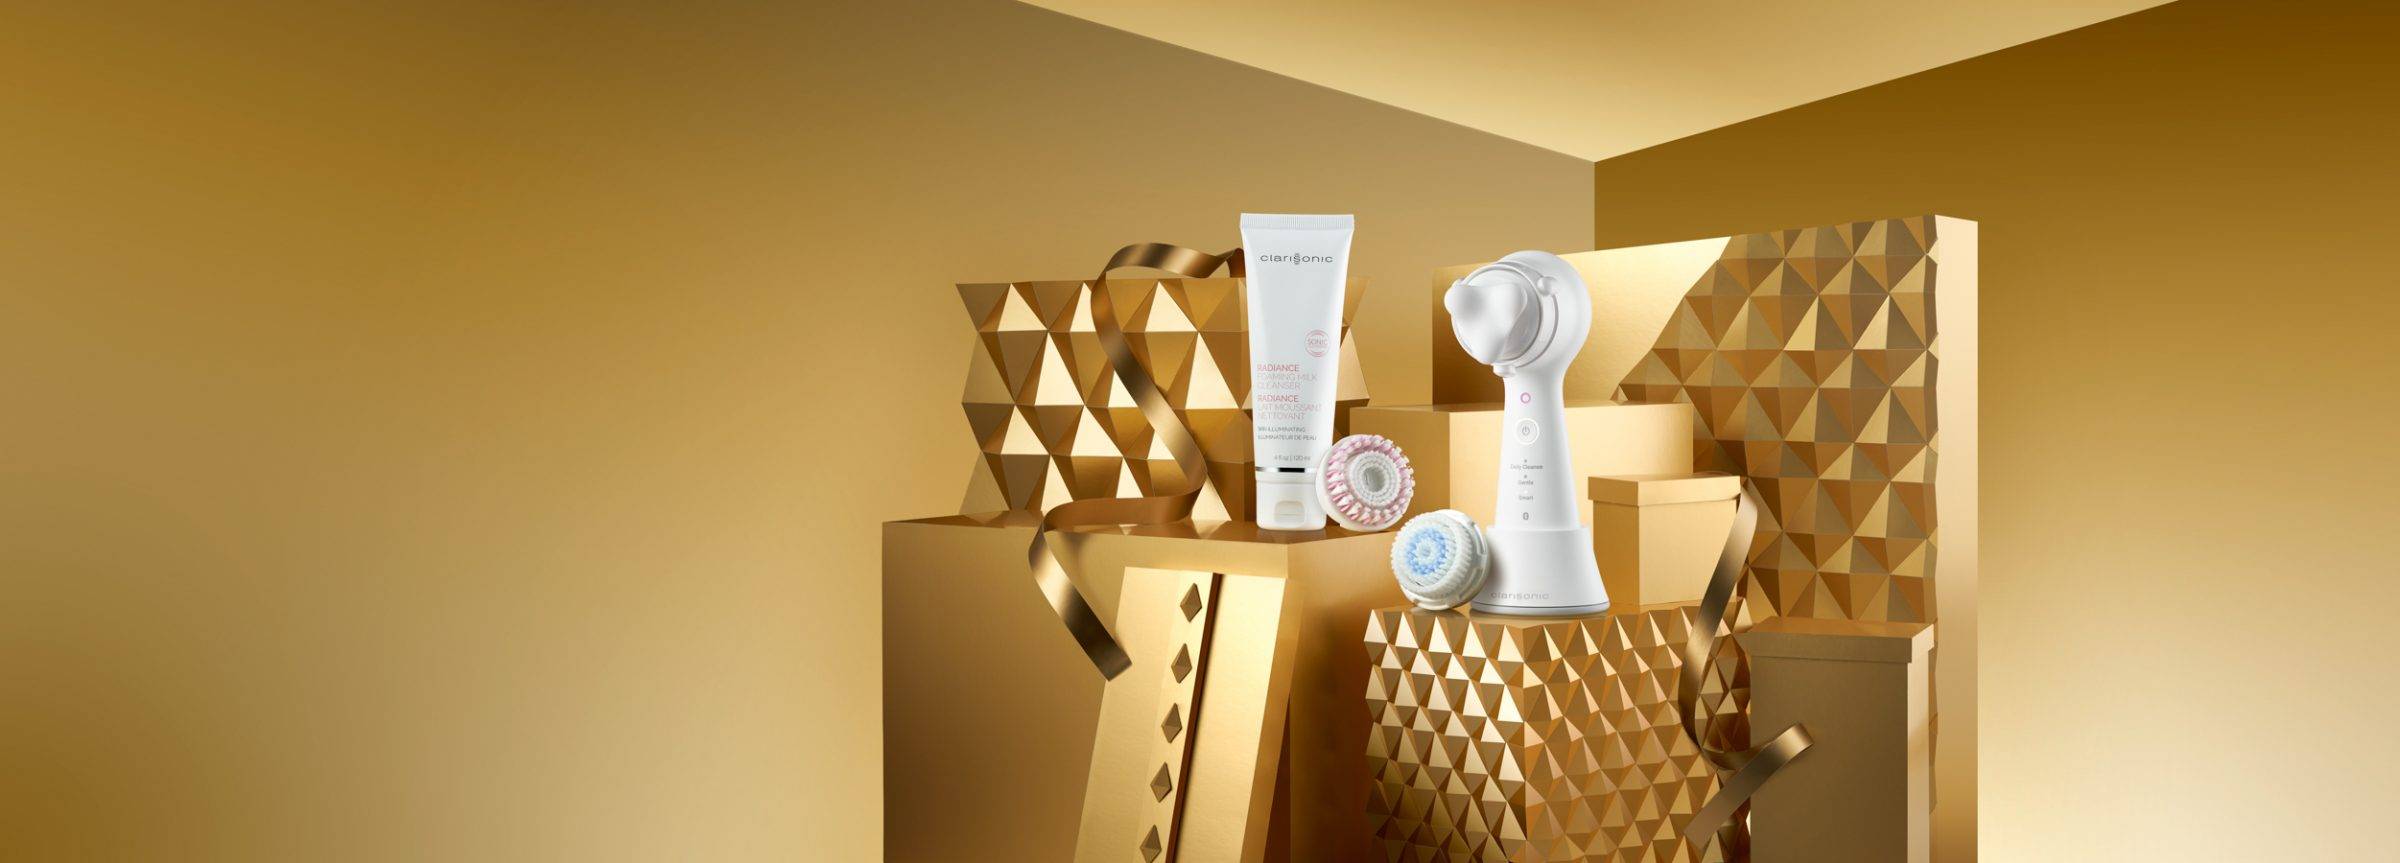 adrian_and_gidi_clarisonic-5